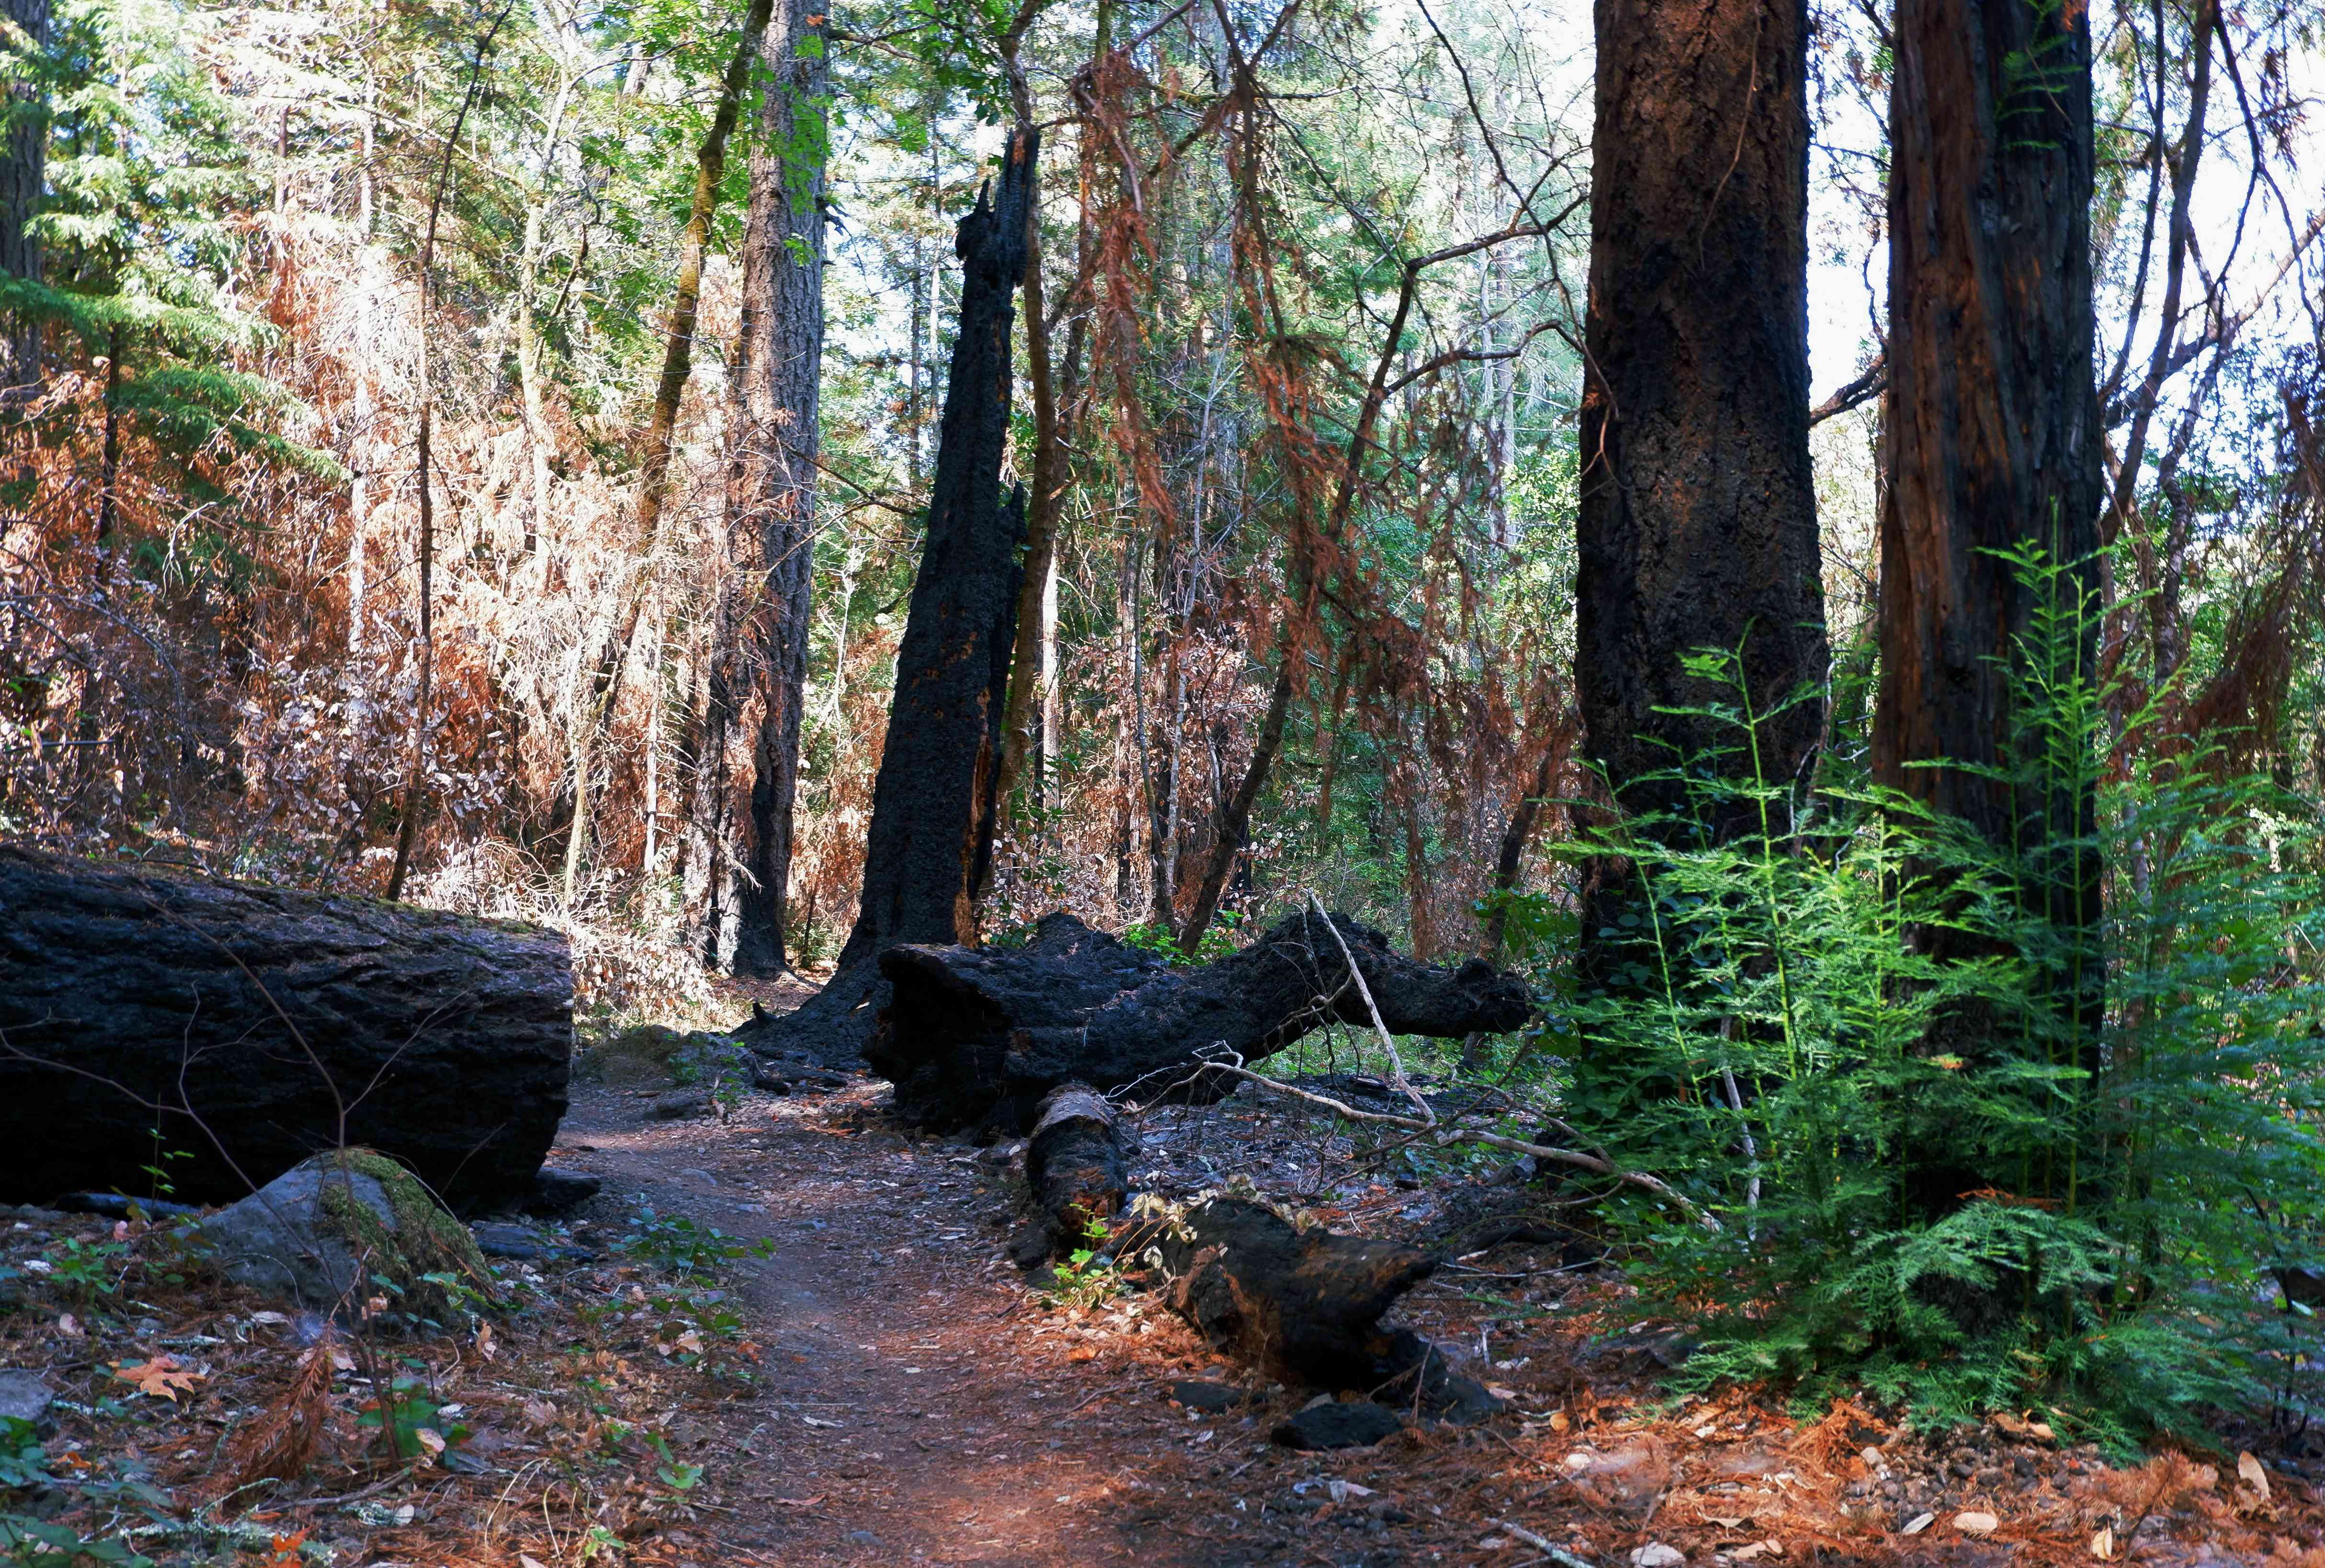 Redwood Trail in Bothe State Park, Napa Valley, California.